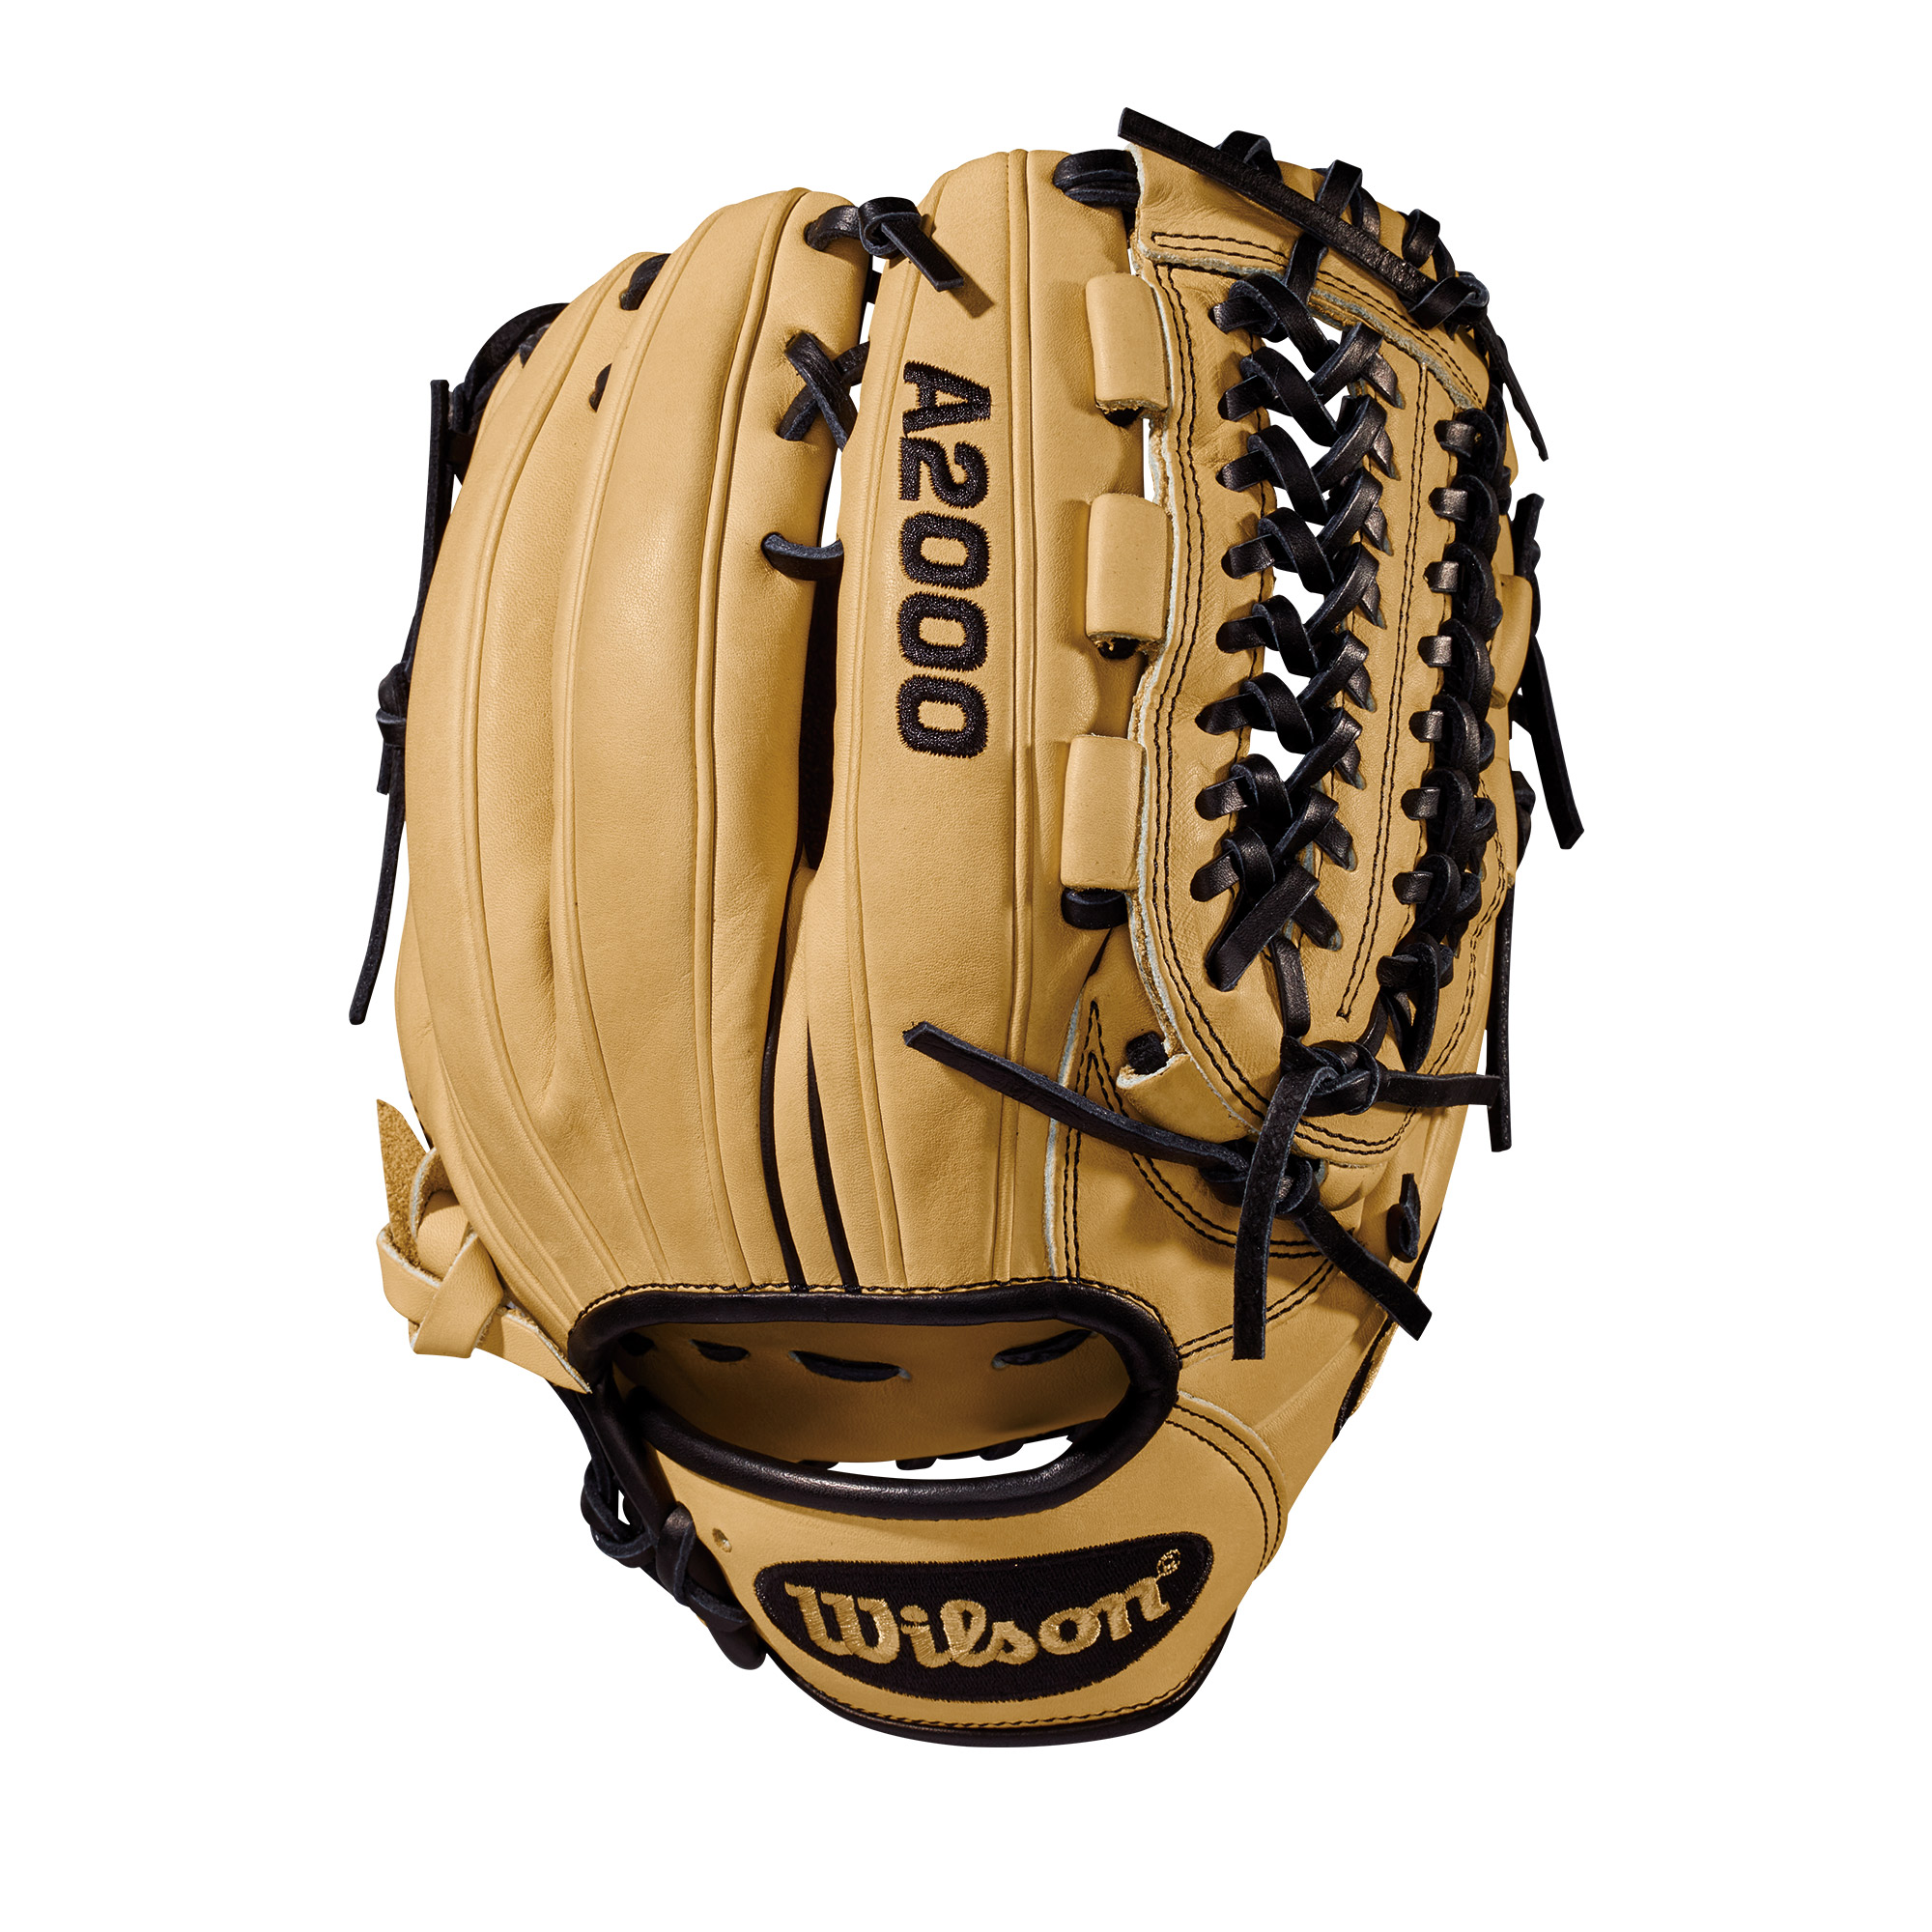 "Wilson 11.75"" A2000 Series Pitcher Baseball Glove, Right Hand Throw"